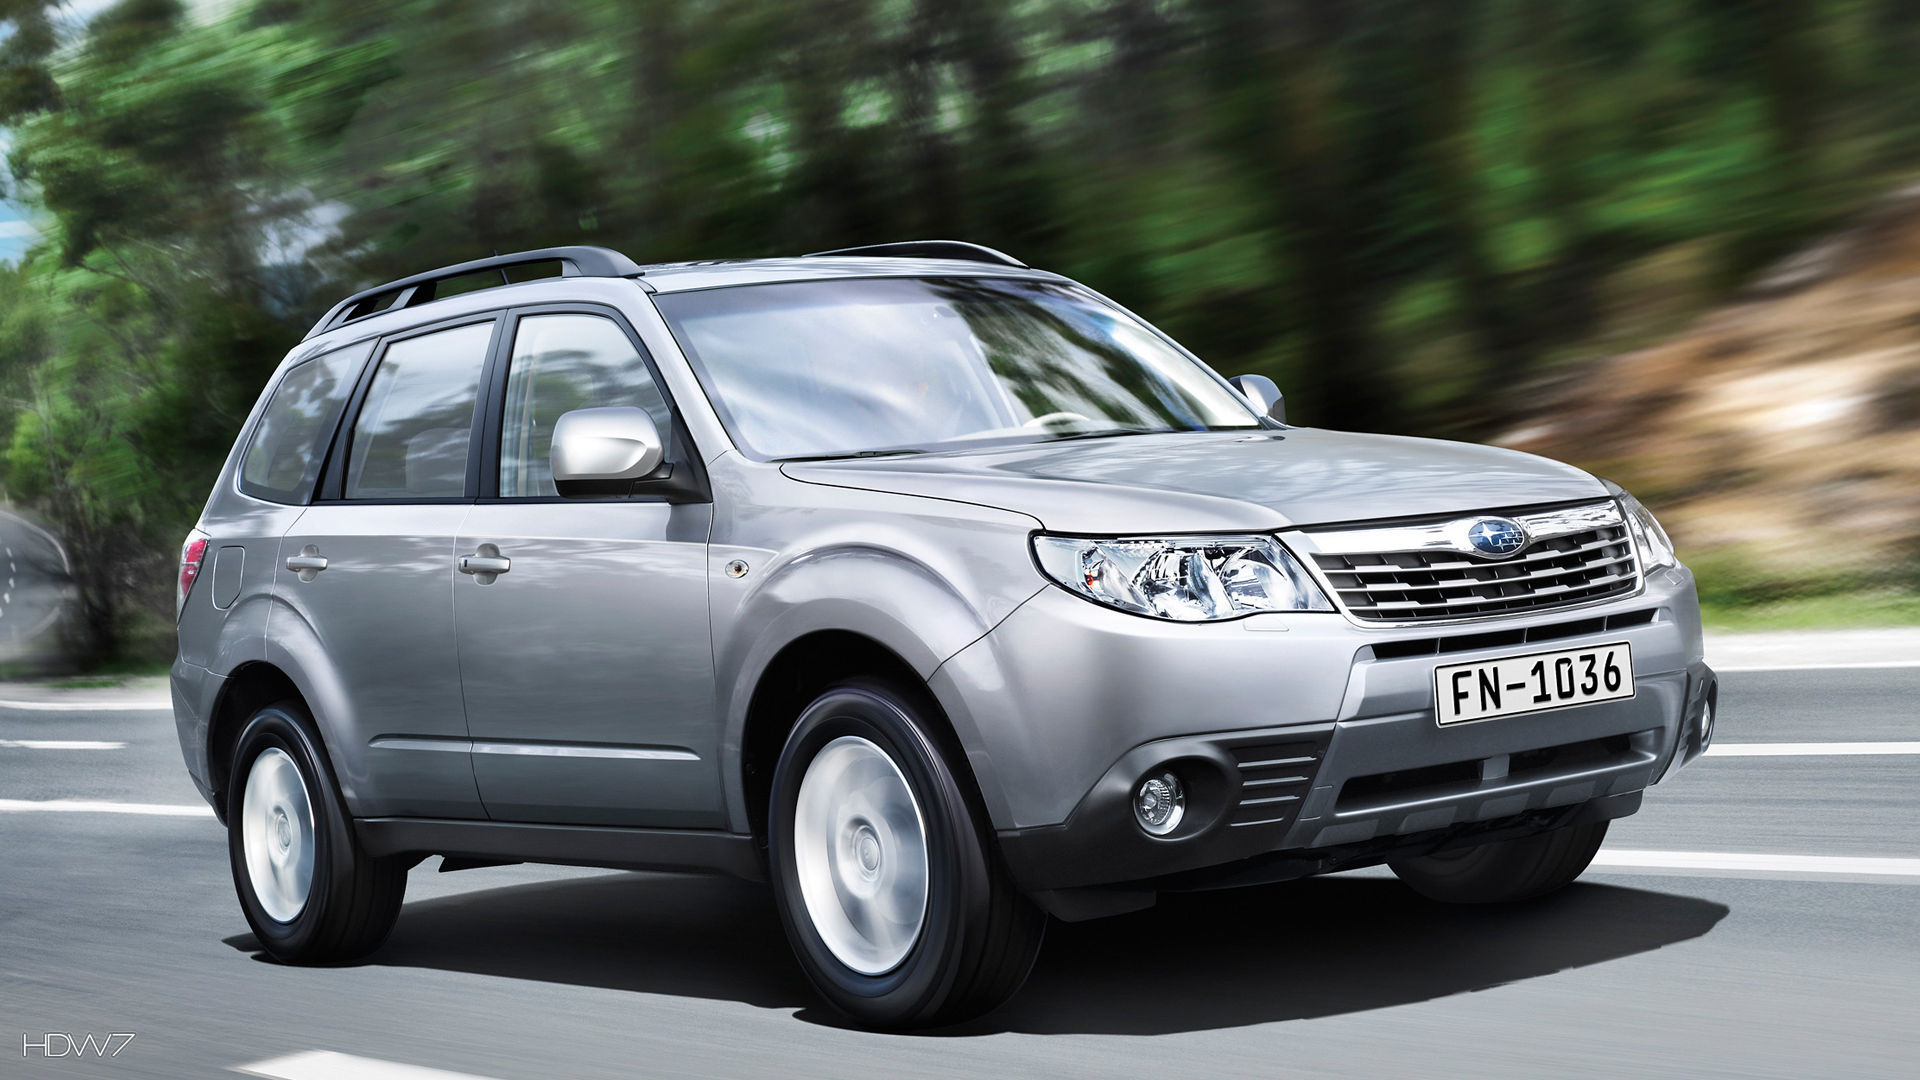 subaru forester 20xs 2008 car hd wallpaper